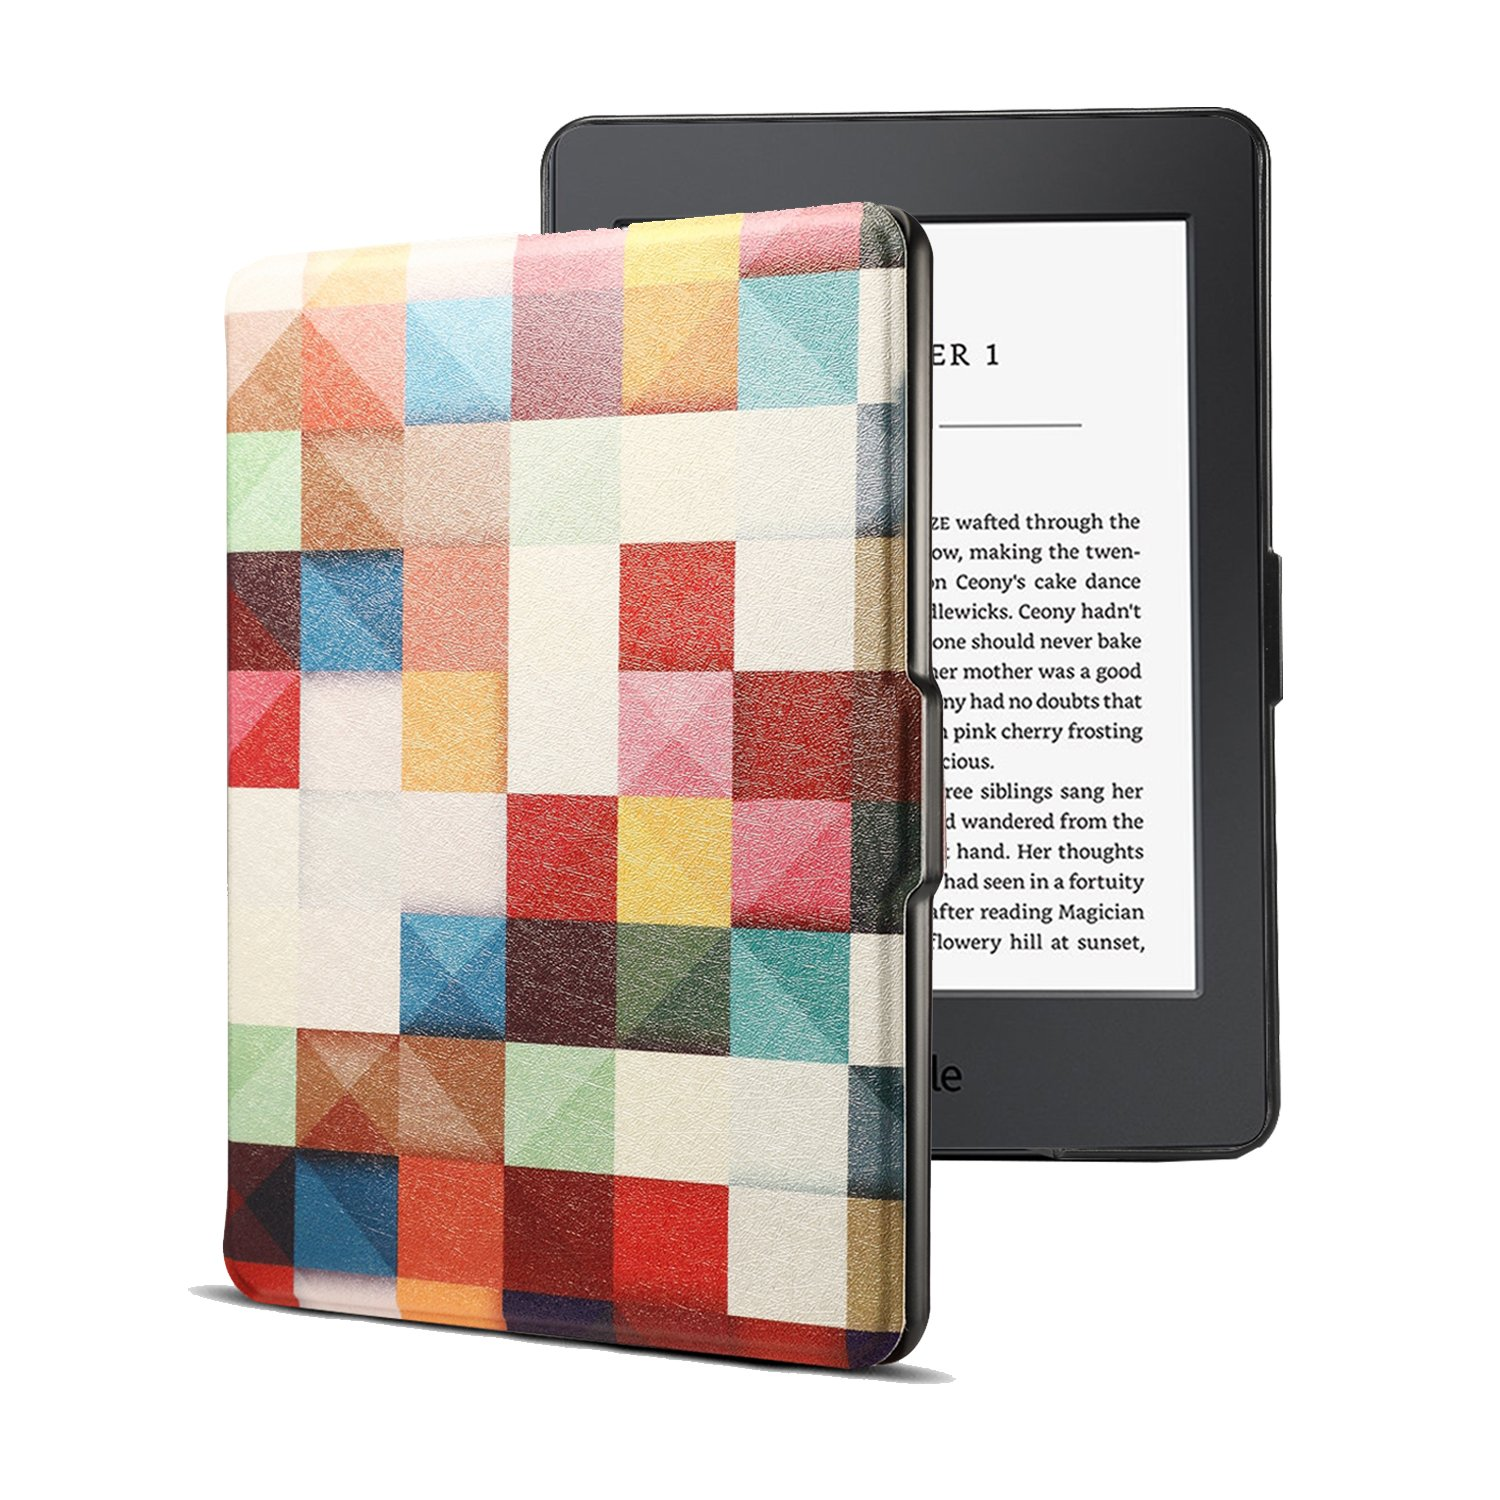 Kindle Paperwhite Case, AICOO Slim Auto Wake/Sleep Magnetic Closure Book Flip PU Leather Tablet Protector Case Cover for eBook Reader Kindle Paperwhite All Versions 2012, 2013, 2014 and 2015,Cube